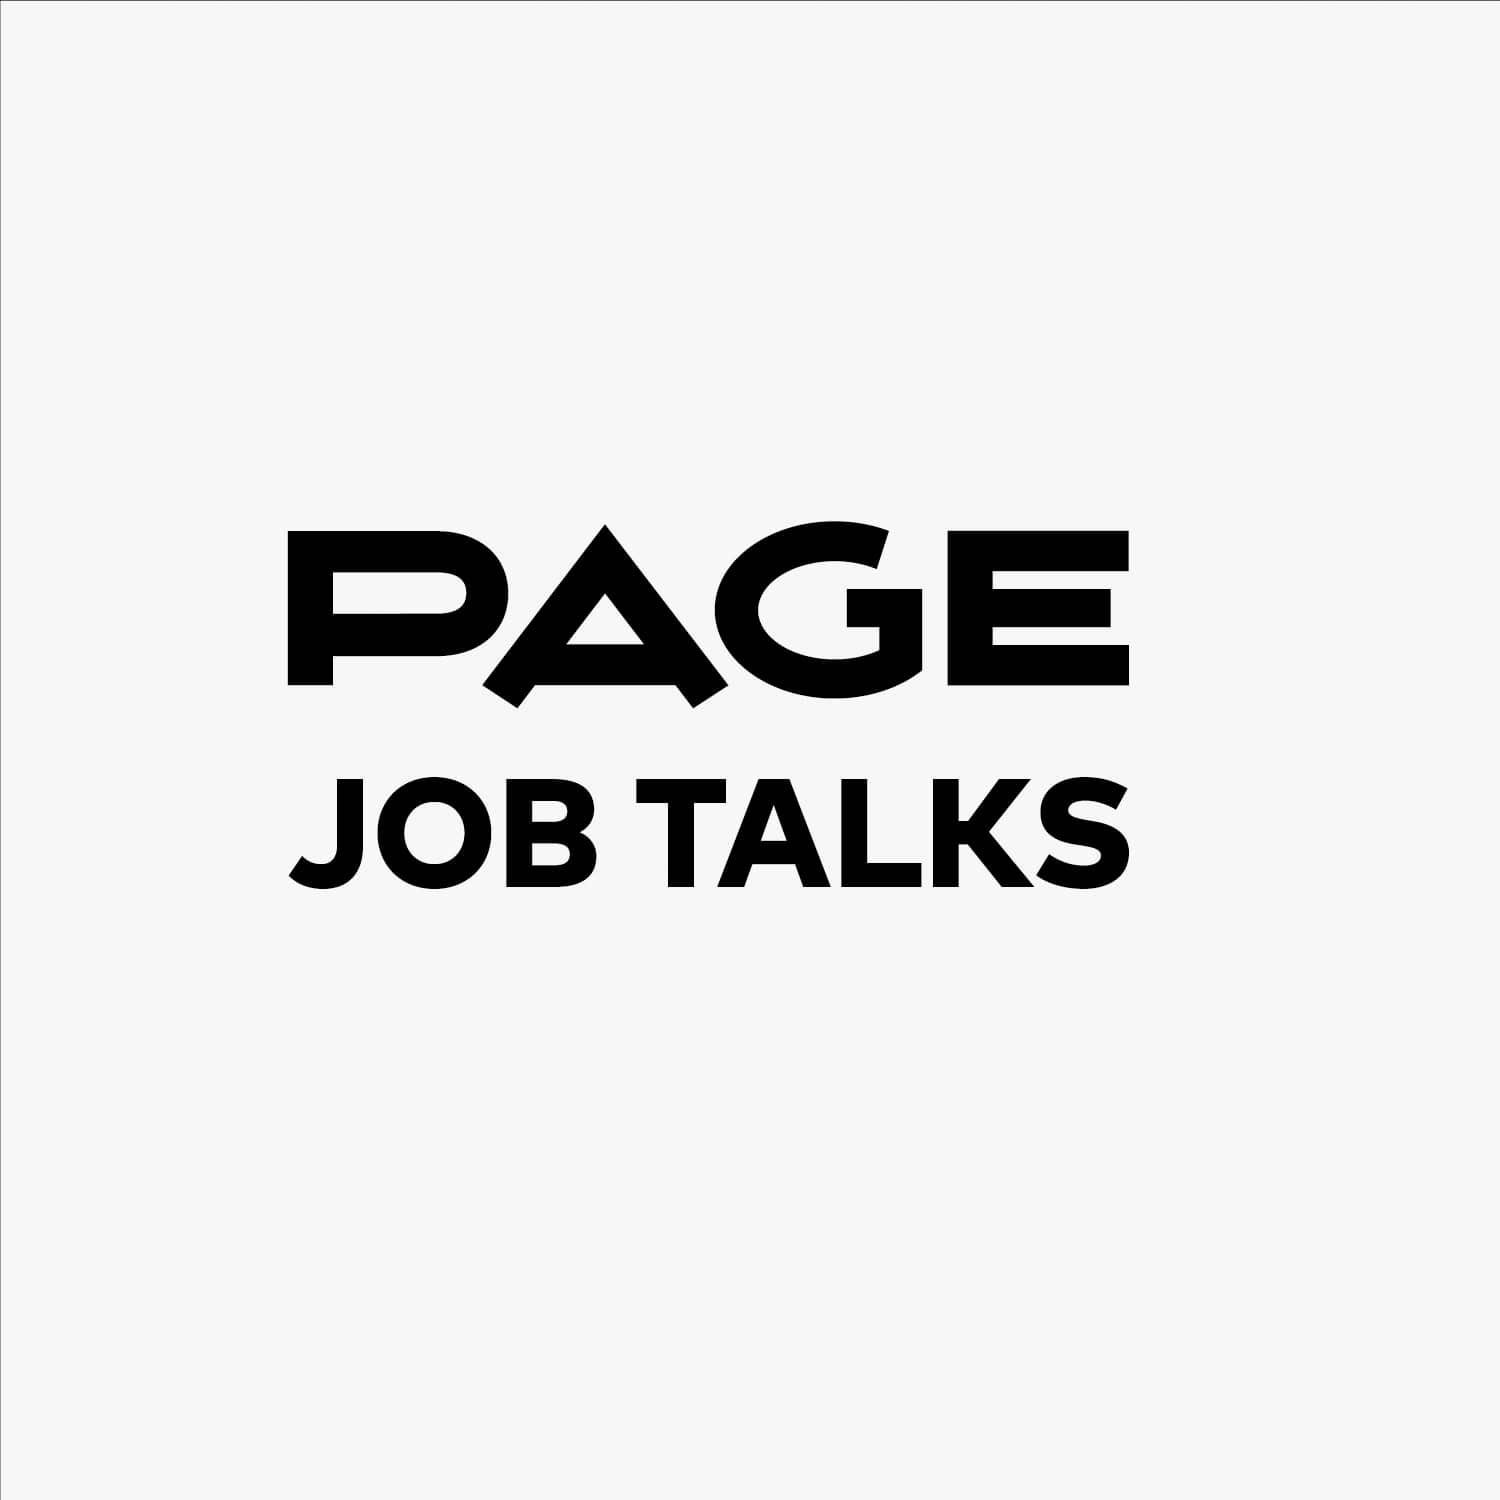 PAGE-Job-Talks-Forward-Festival